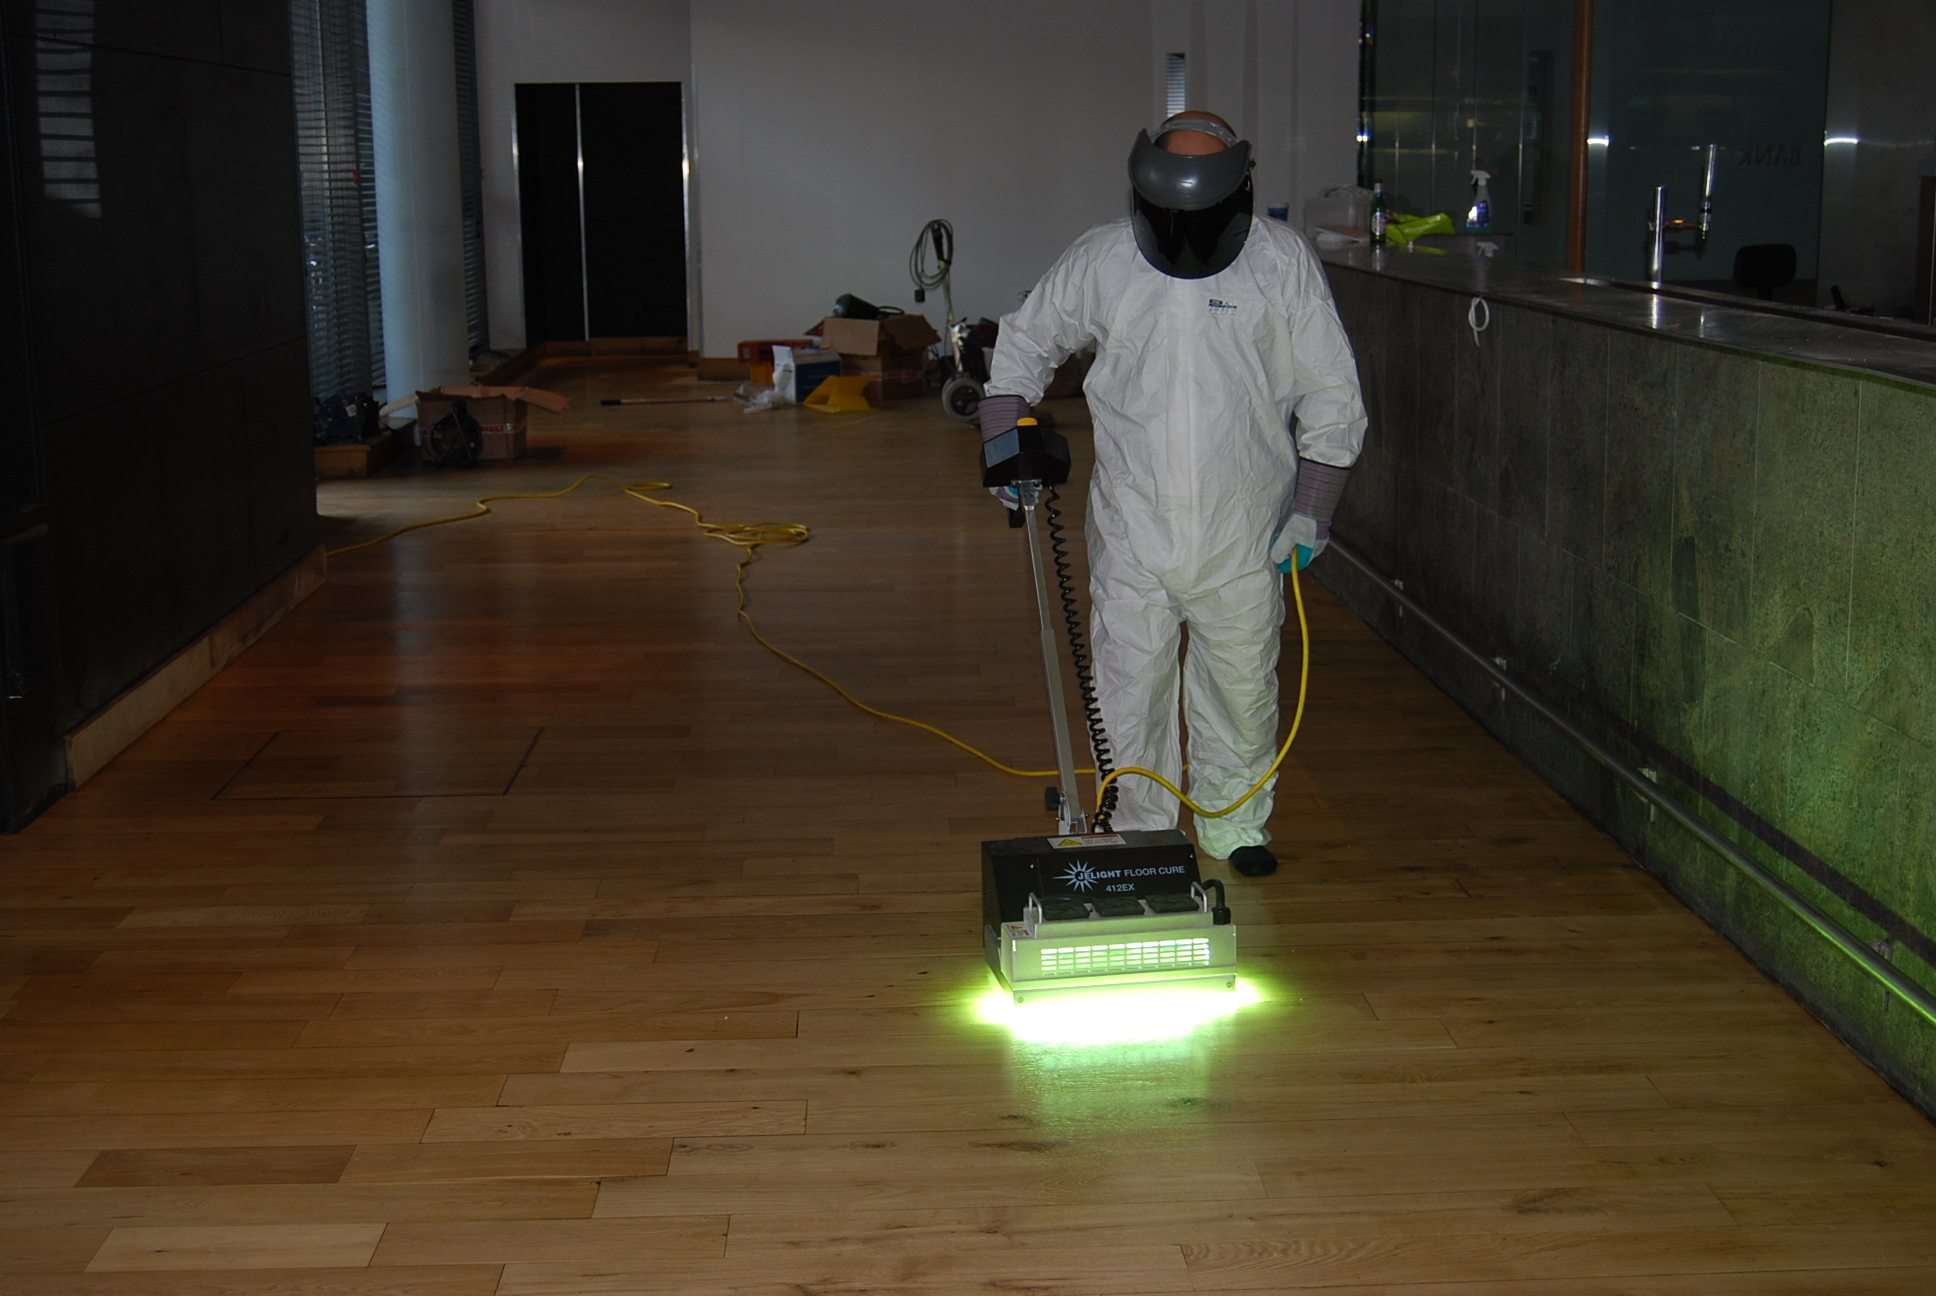 Curing the floor